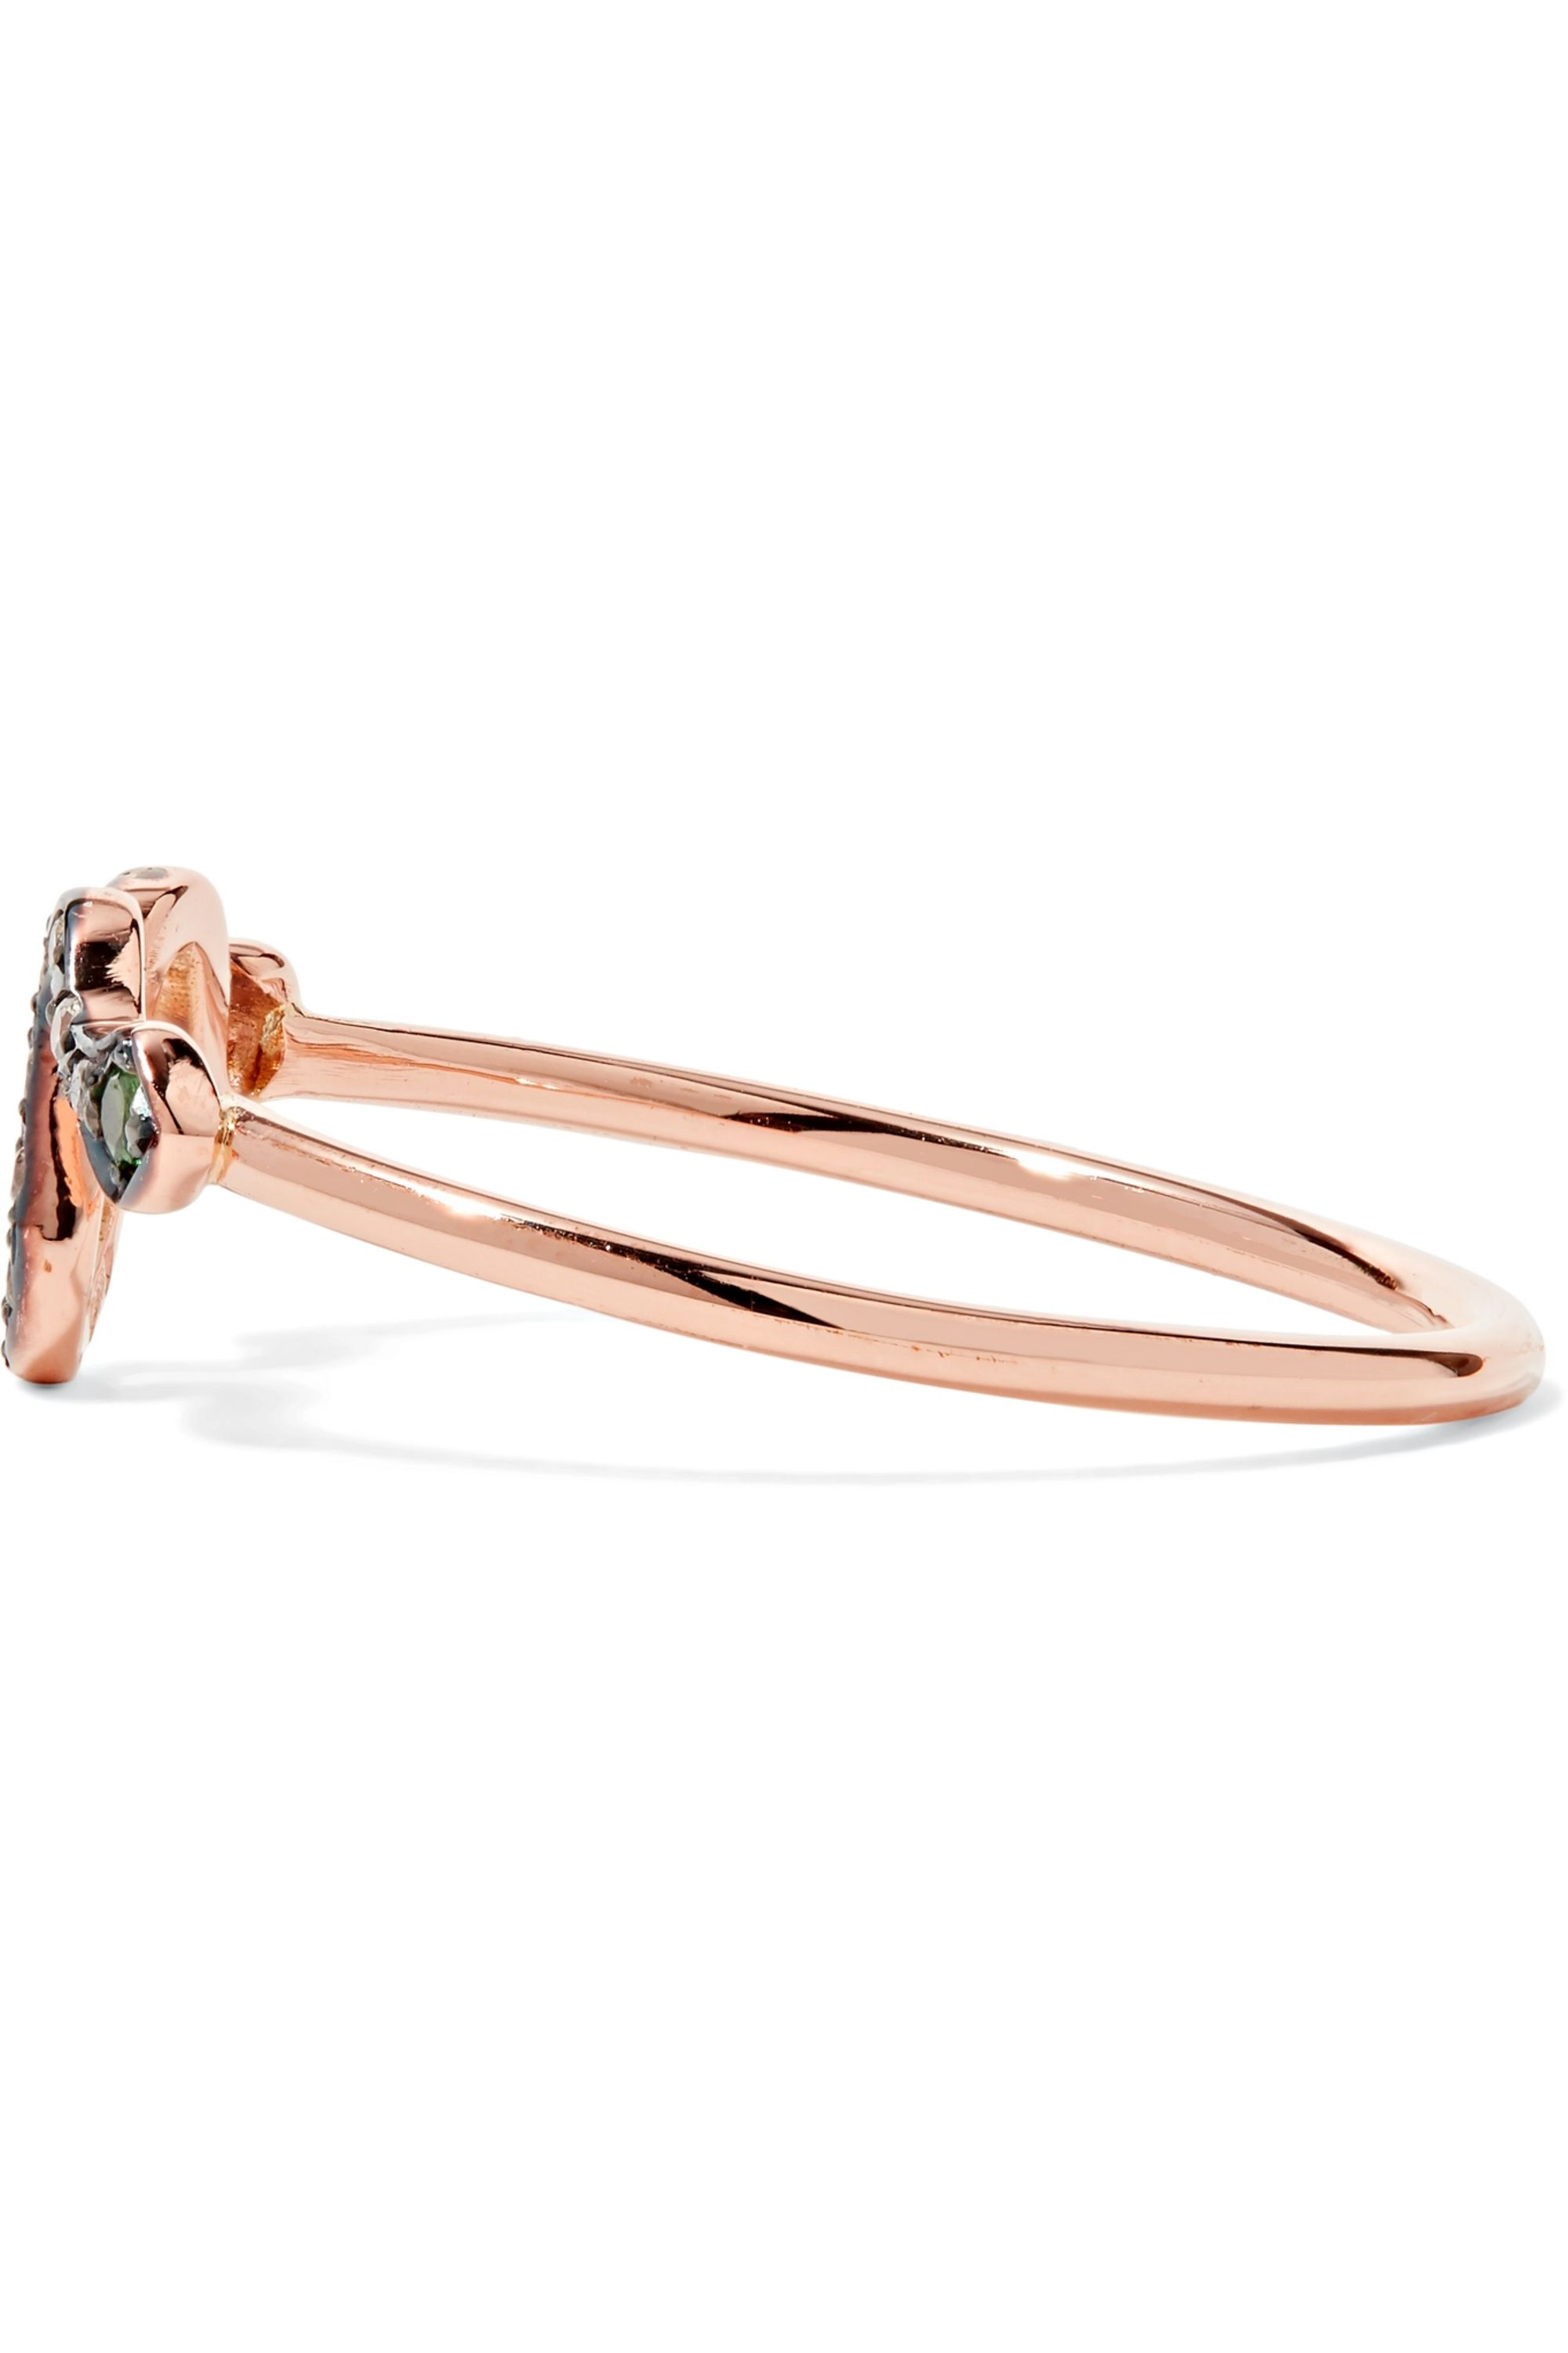 Rose Gold Mini Snake 18-karat Gold, Diamond And Tsavorite Ring | Ileana Makri